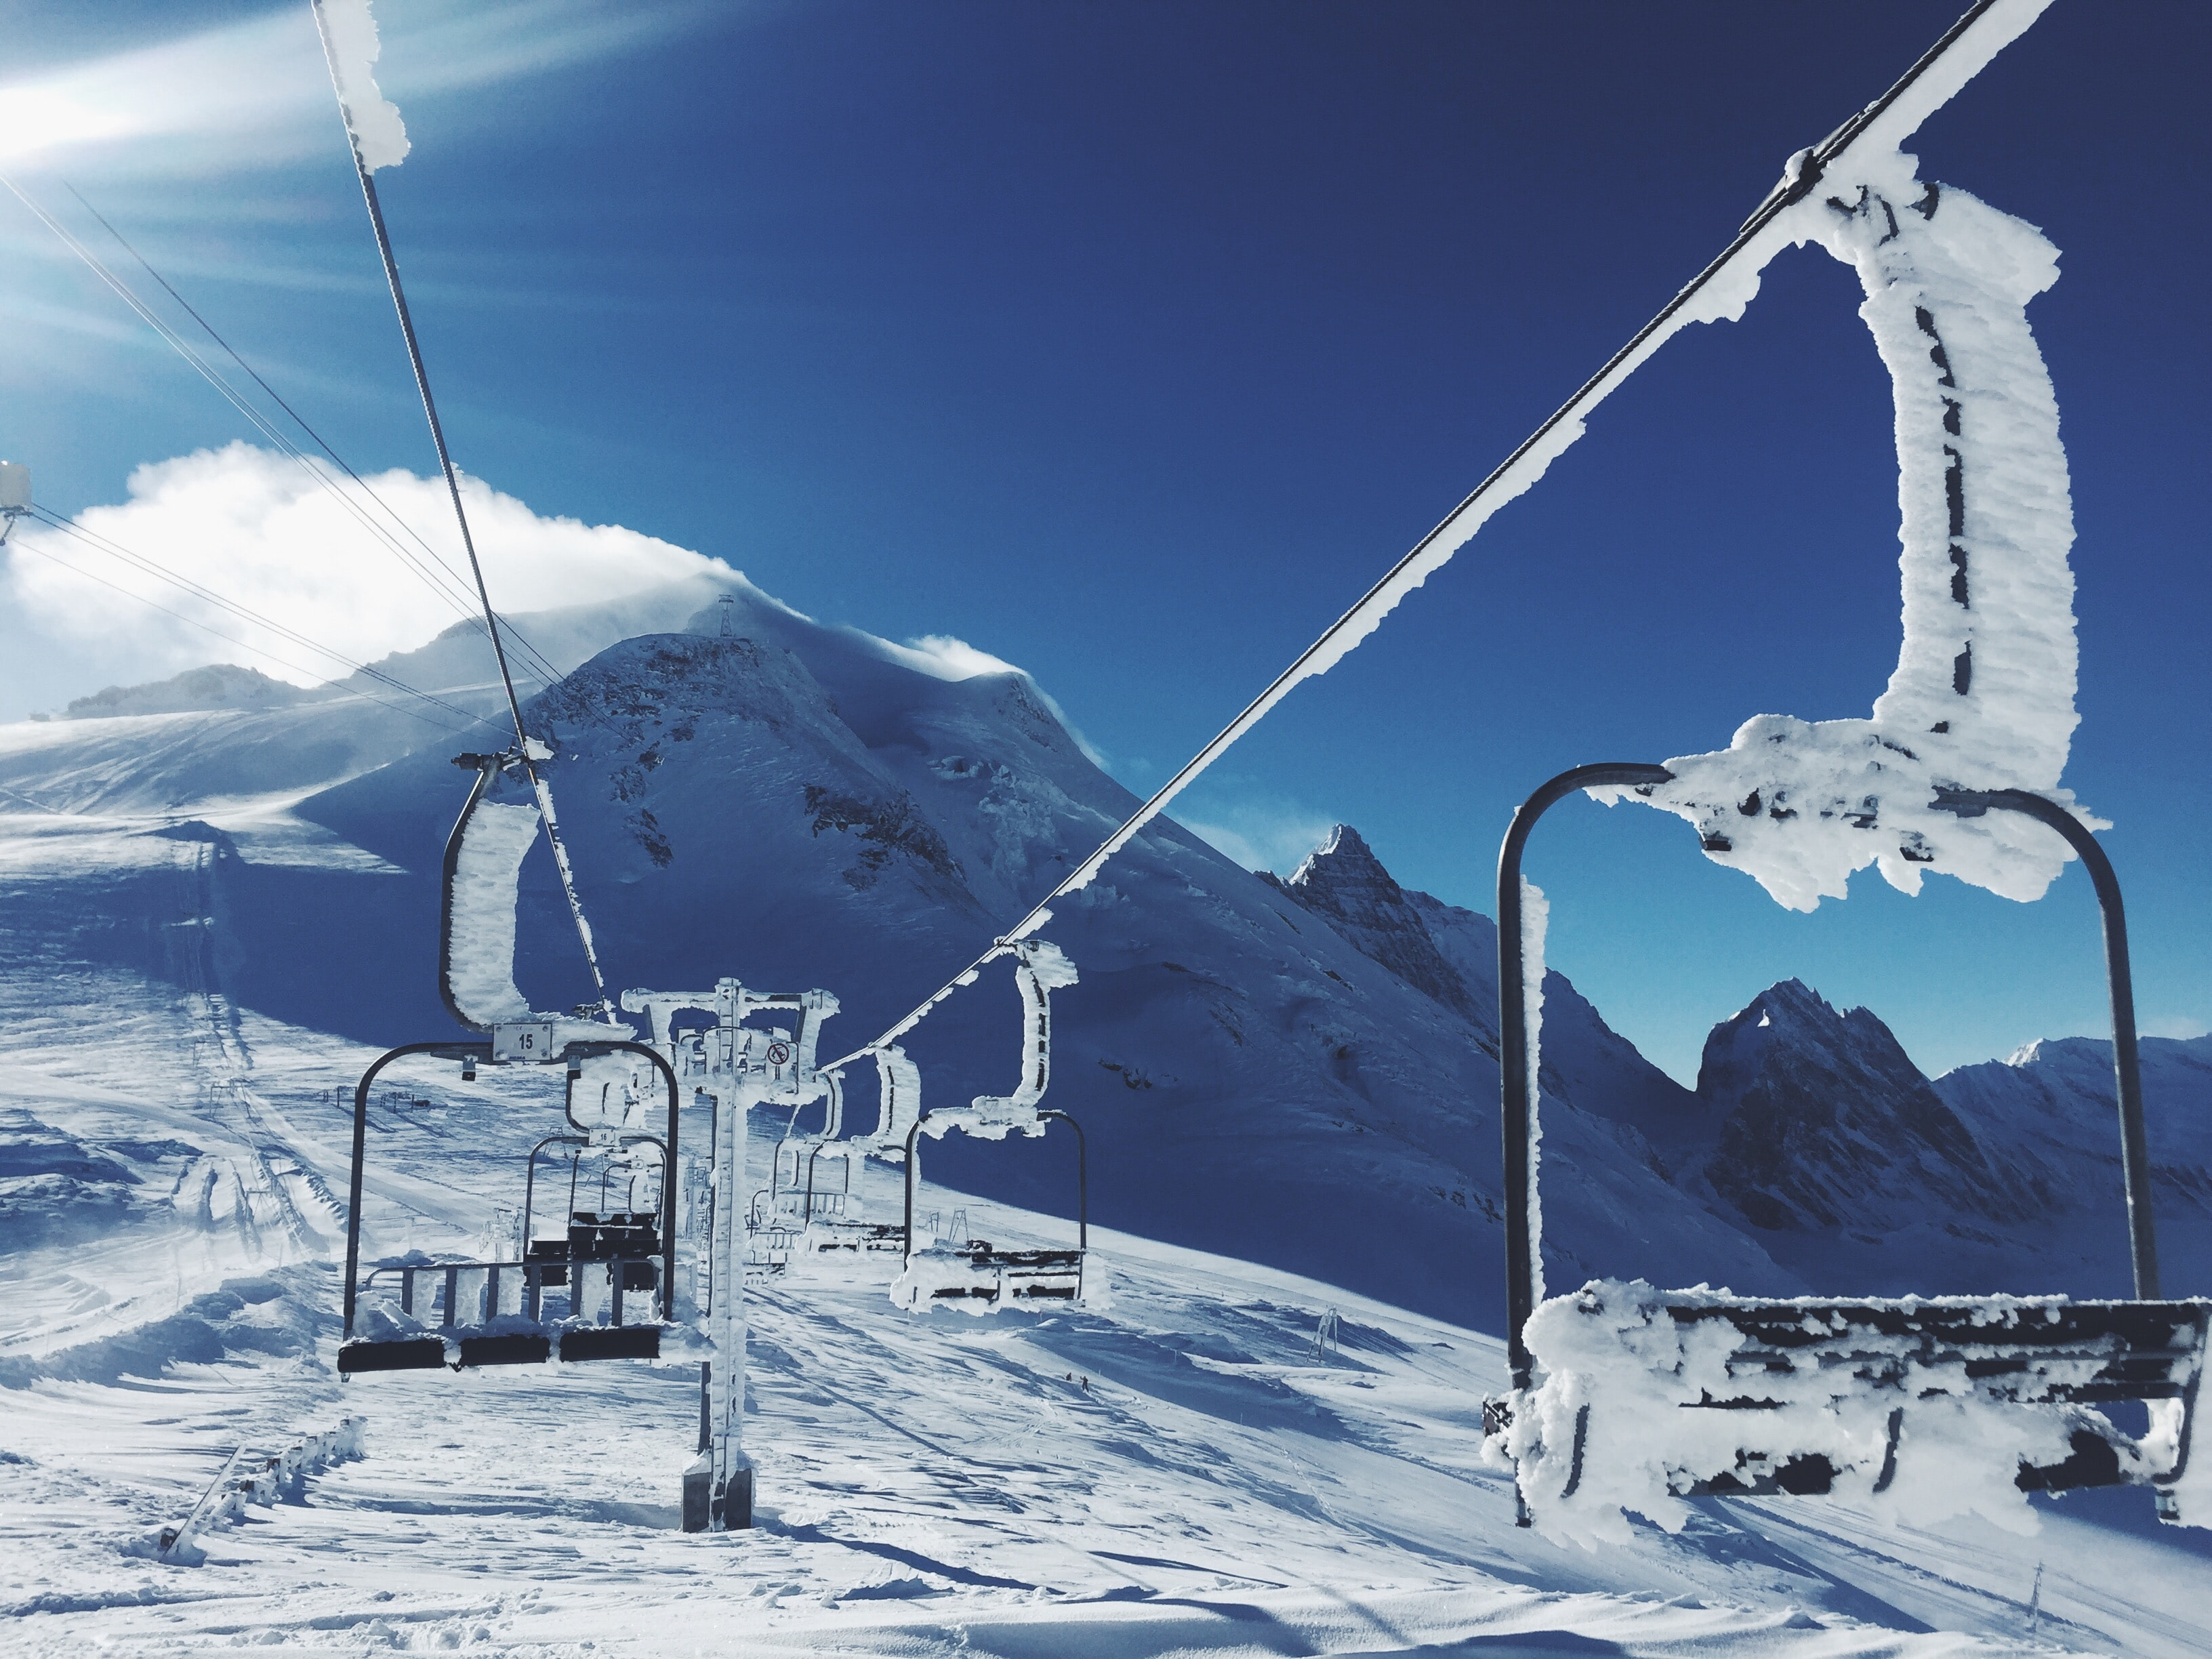 Snow covered ski lifts stopped on a snowy mountain